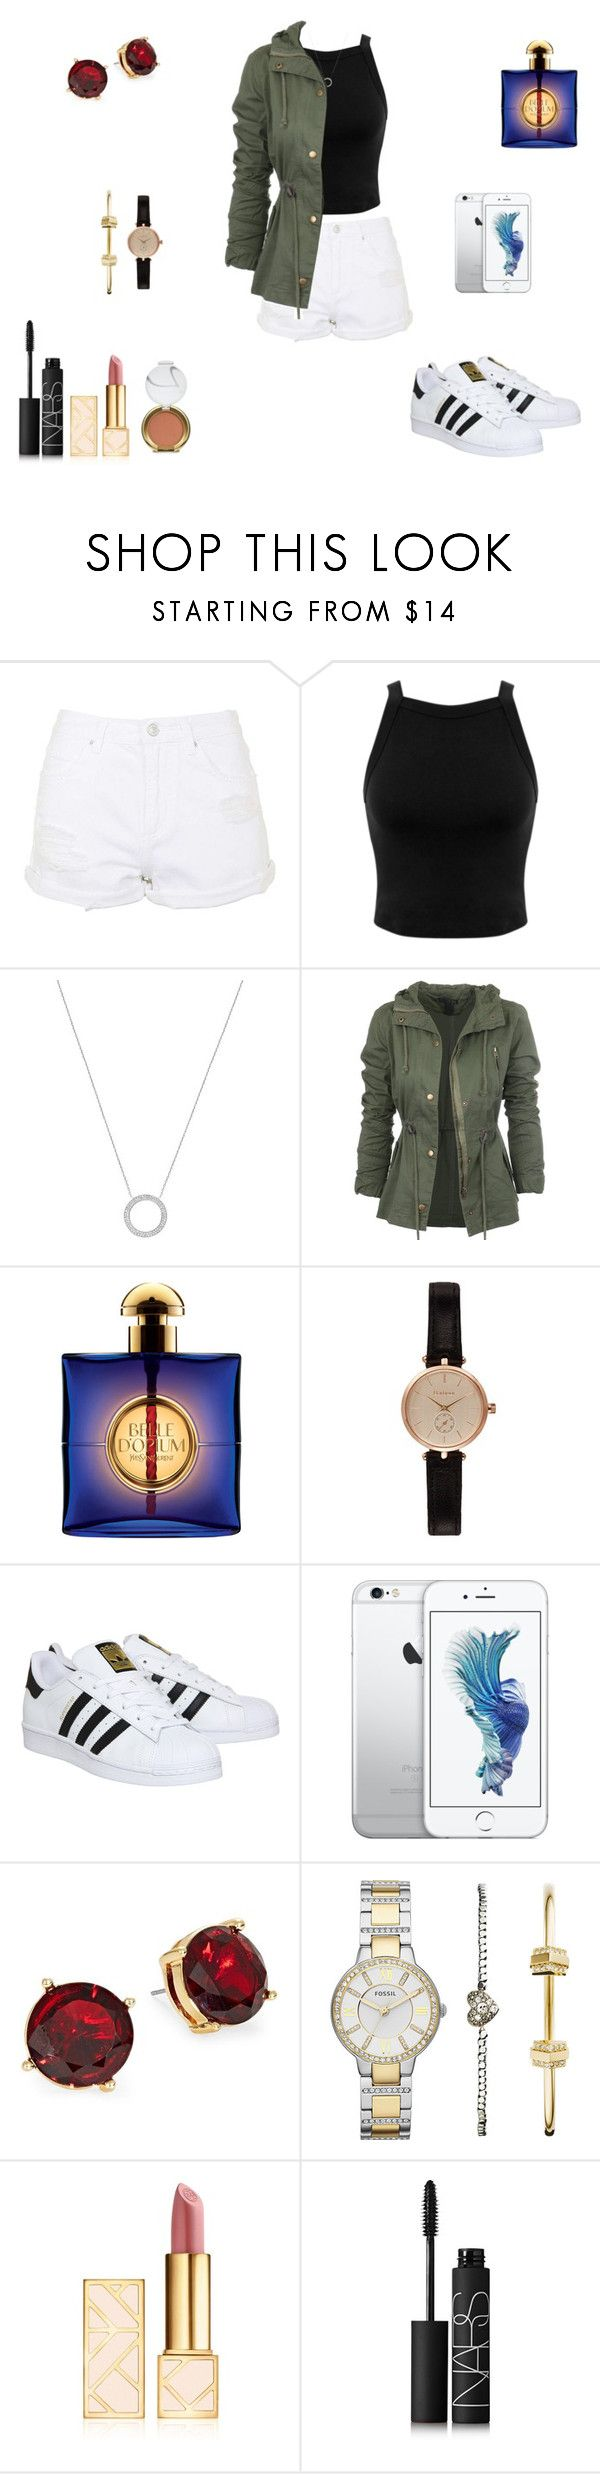 """Sem título #665"" by sr-magcult-bieber-gomez ❤ liked on Polyvore featuring Topshop, Miss Selfridge, Michael Kors, Yves Saint Laurent, Barbour, adidas, Lauren Ralph Lauren, FOSSIL, Tory Burch and NARS Cosmetics"